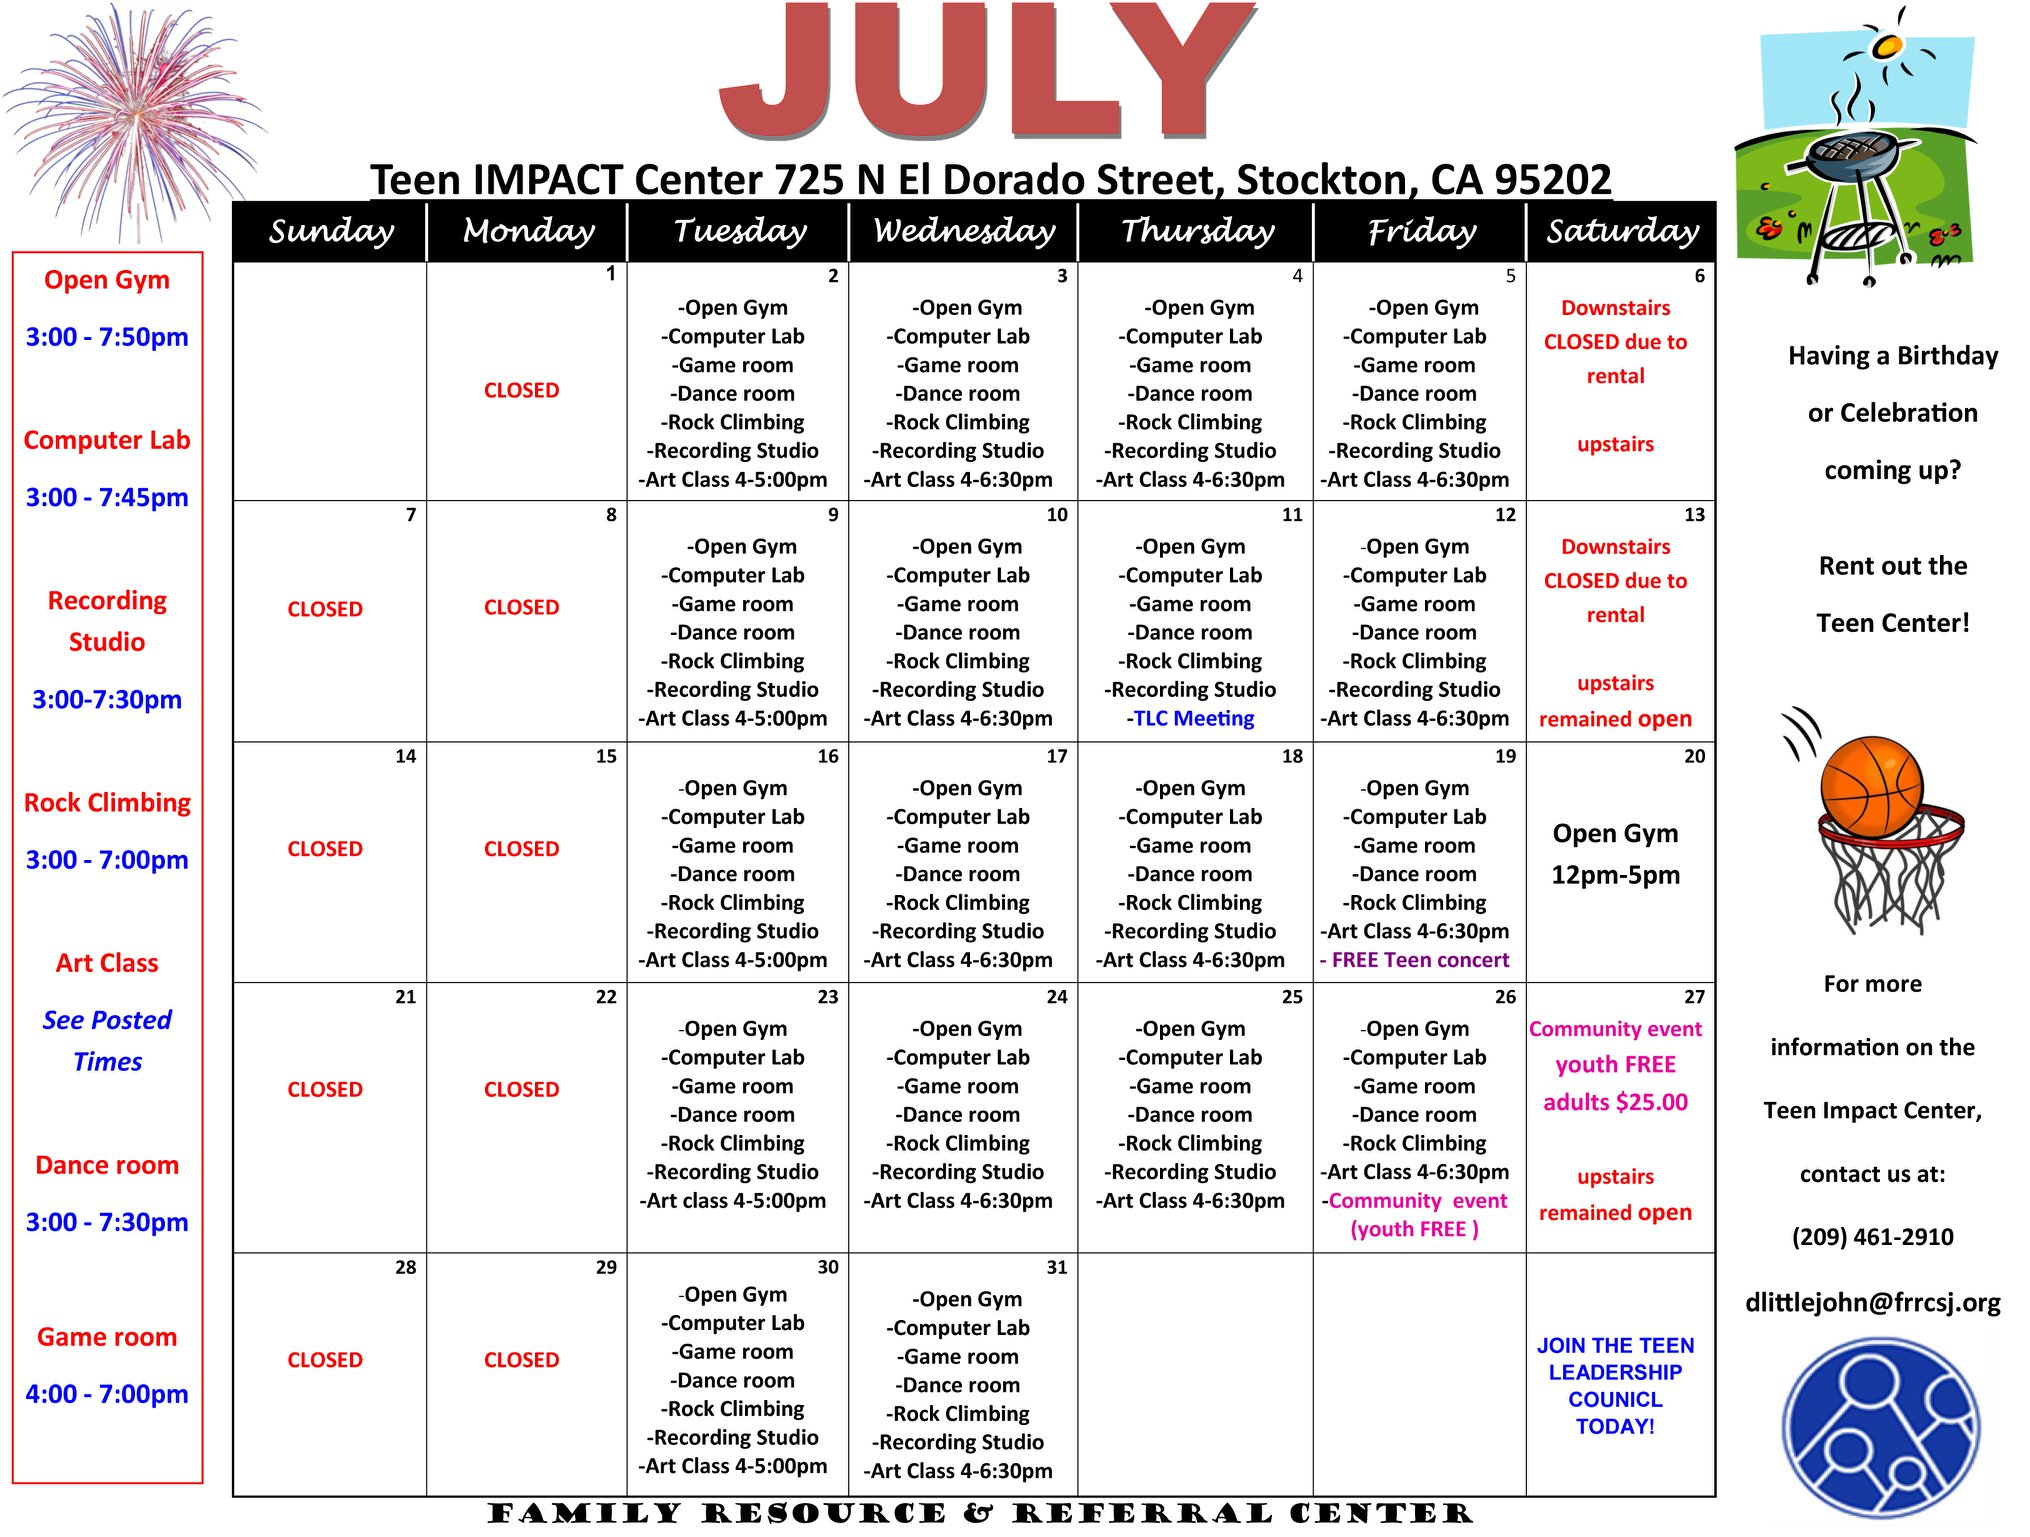 Calendar of all activities held at the Podesto Teen Impact Center